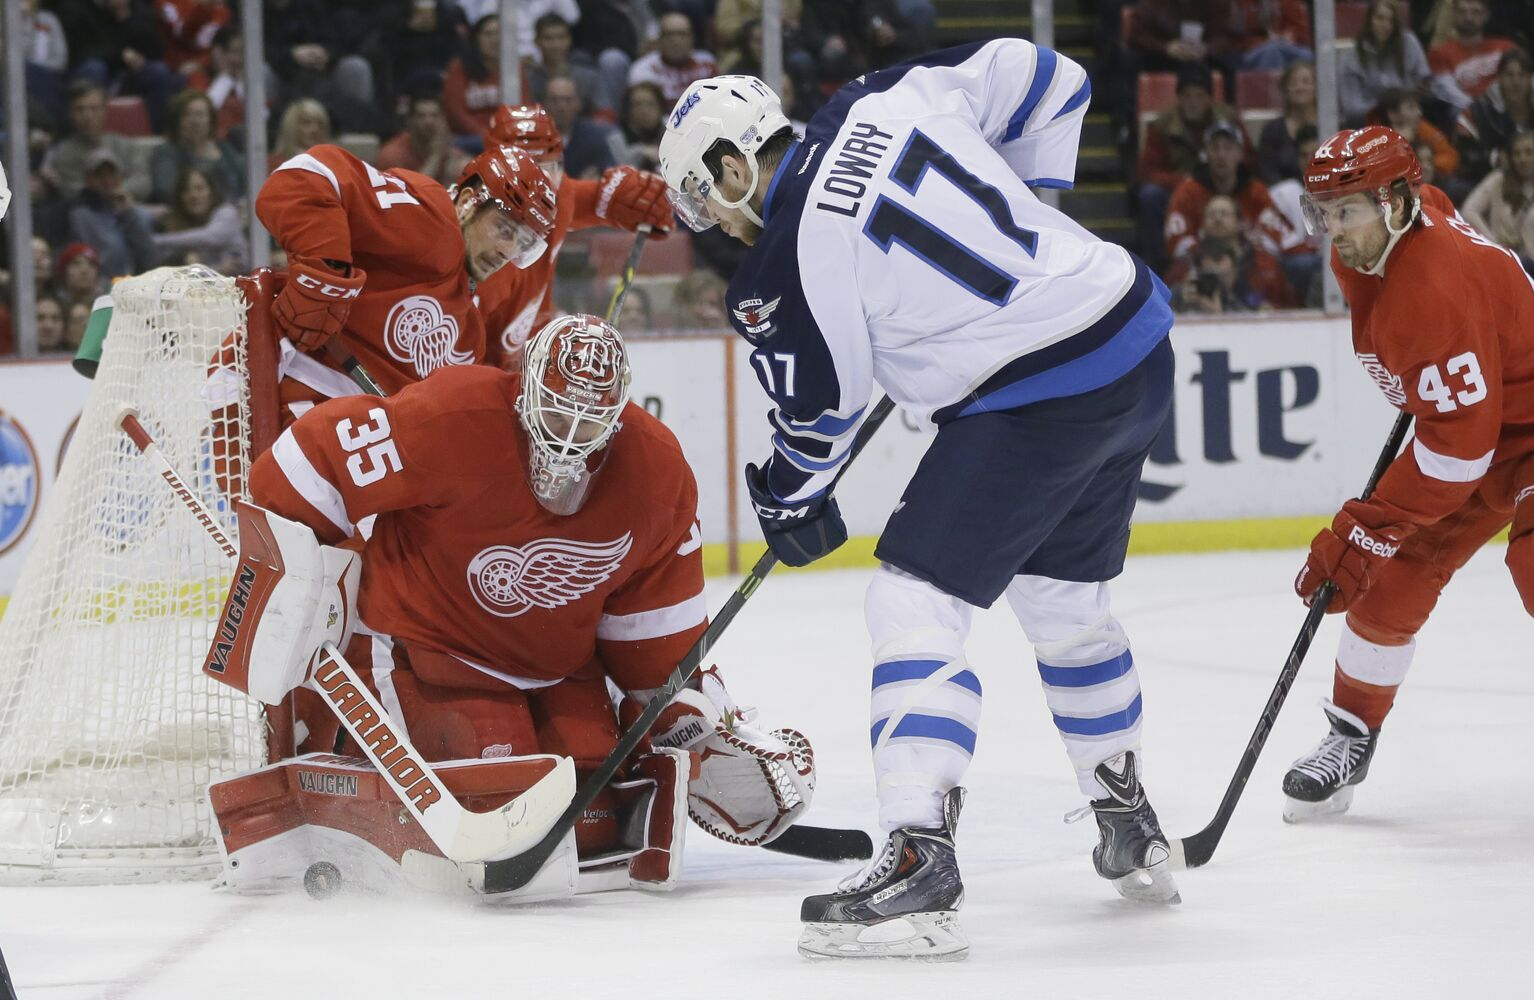 Adam Lowry bears down on Red Wings goalie Jimmy Howard. (Carlos Osorio / The Associated Press)